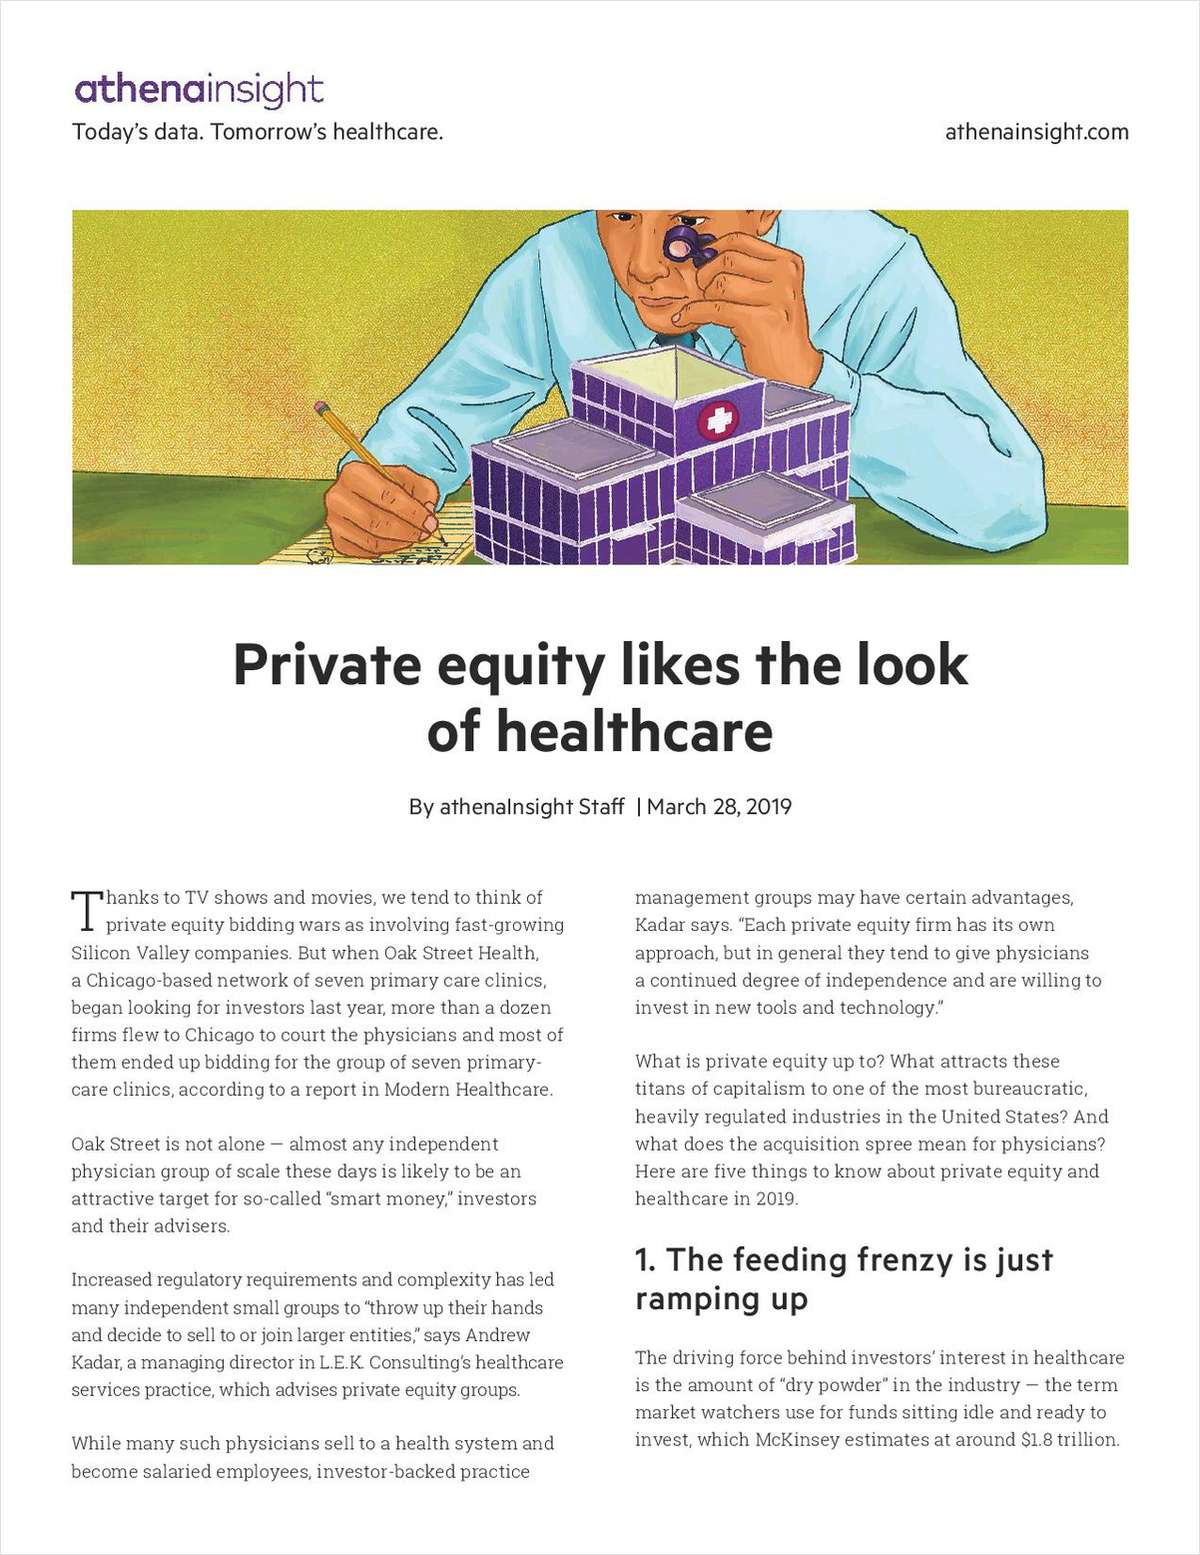 Why is healthcare such a hot target for private equity?